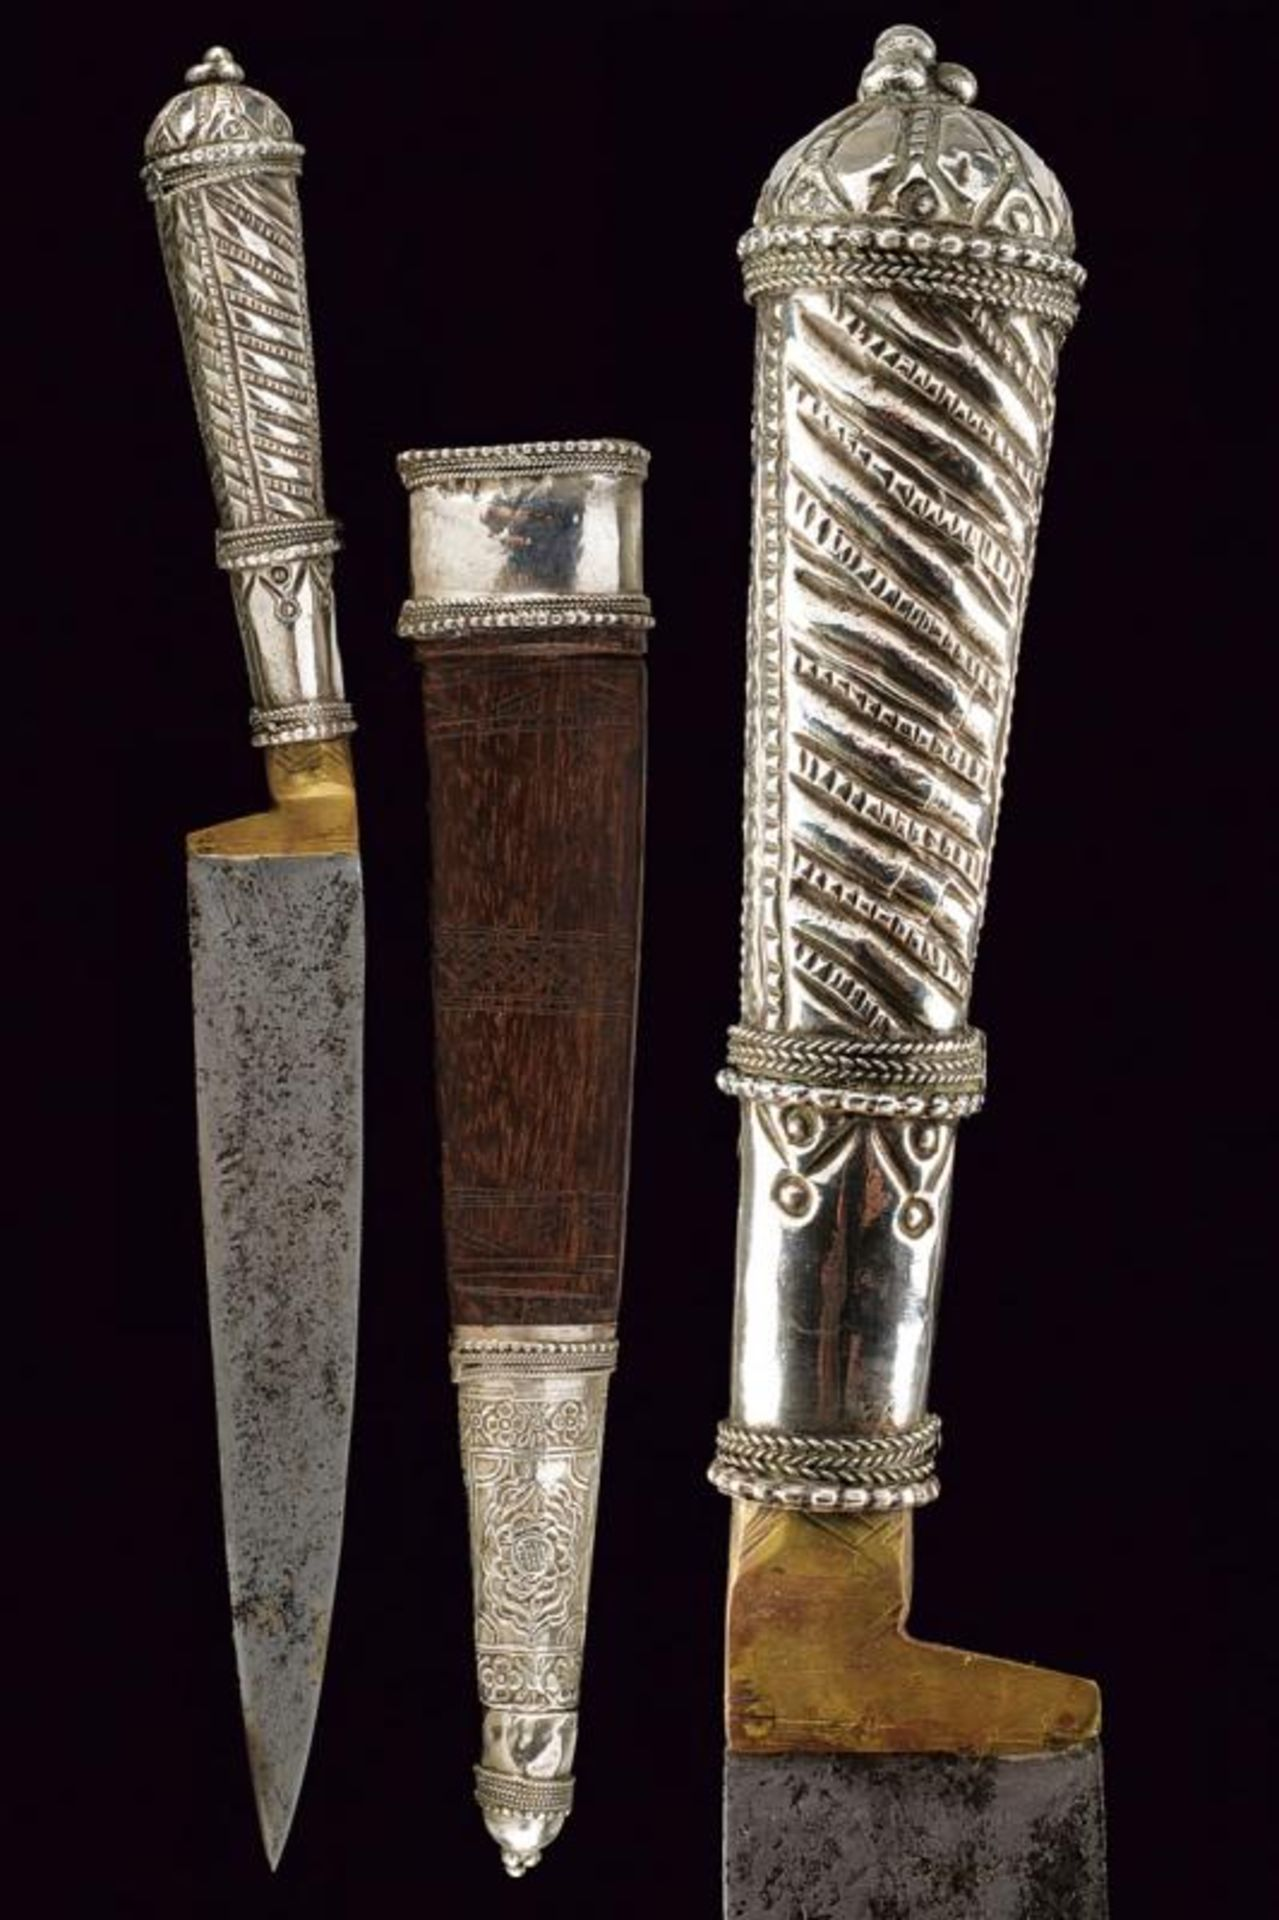 A silver mounted knife